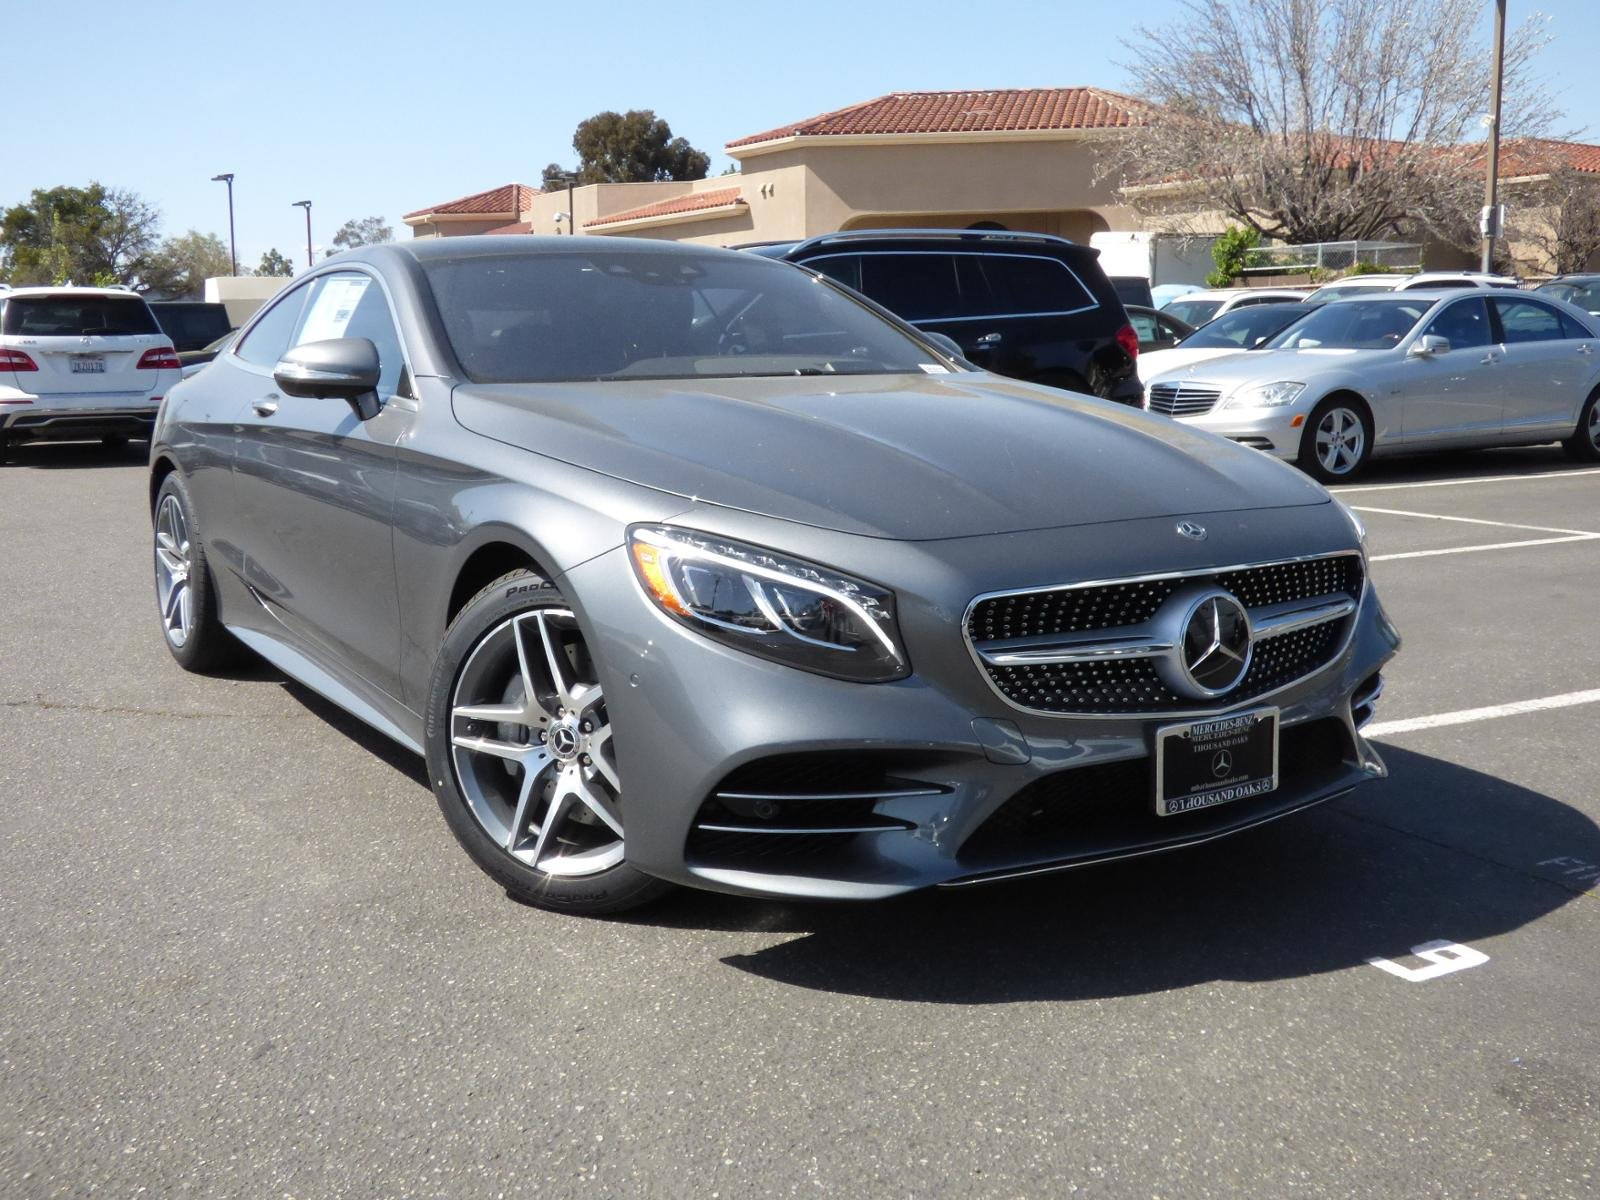 New 2018 Mercedes Benz S Class S 560 COUPE in Thousand Oaks